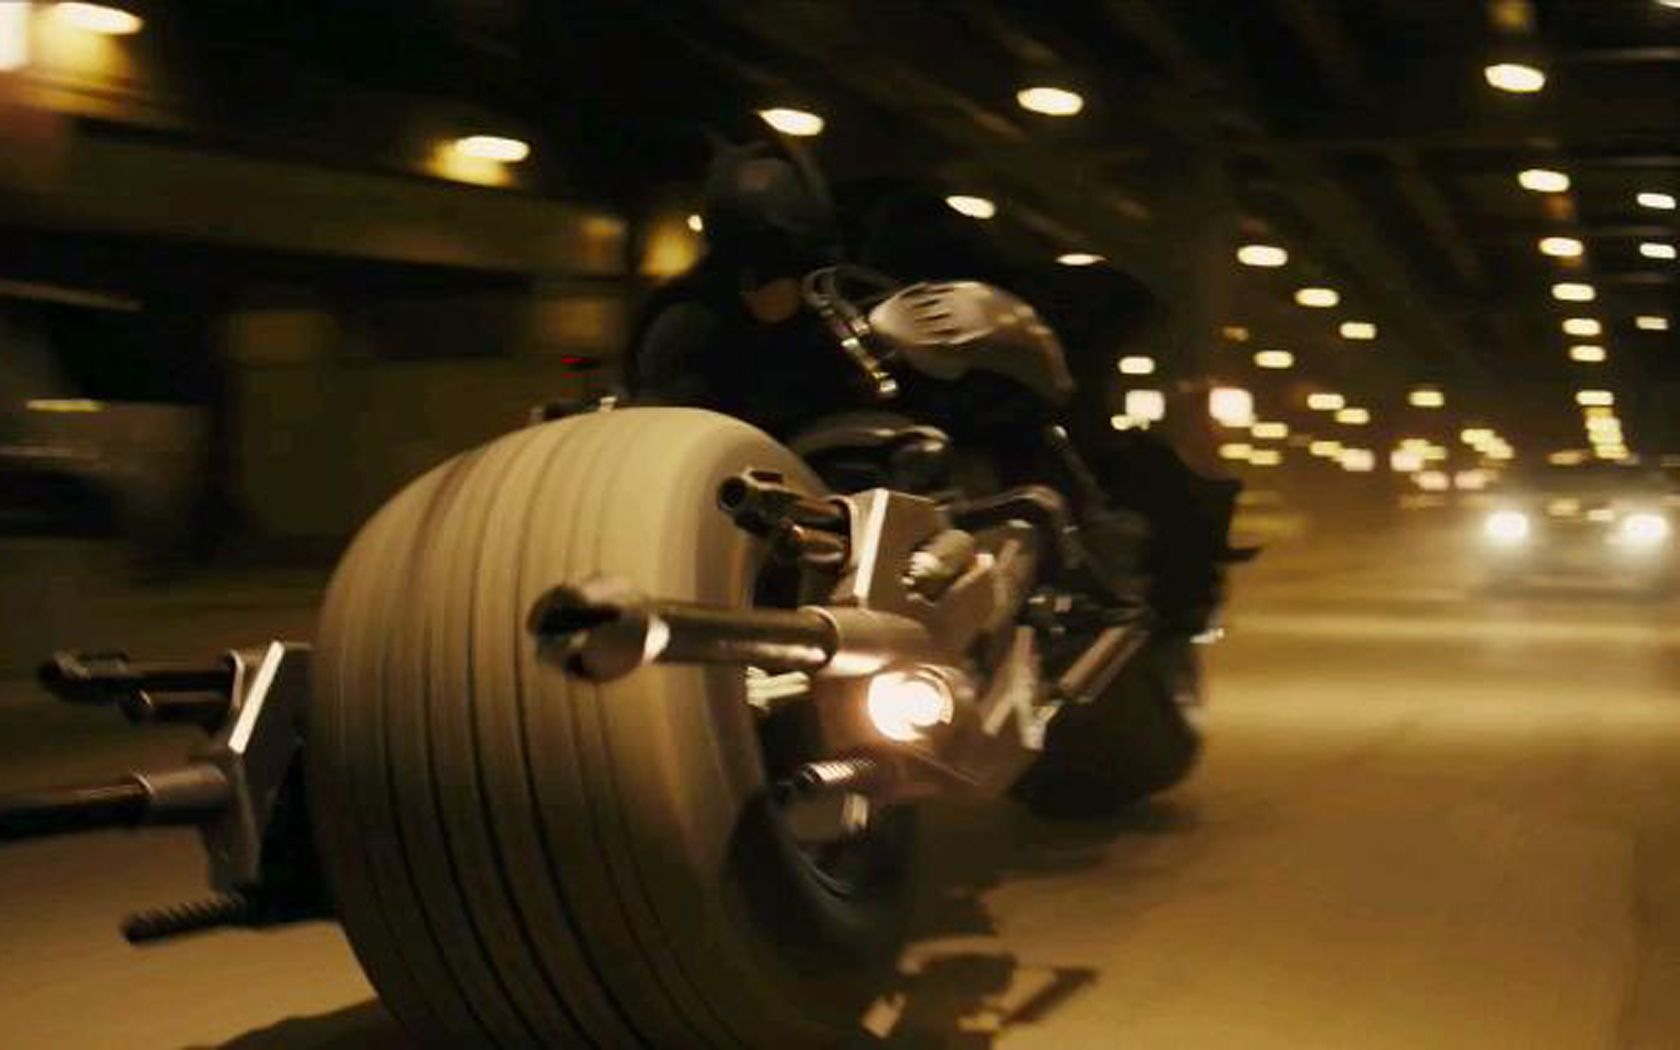 Batman Riding Fast On Motorcycle Wallpaper 1680x1050